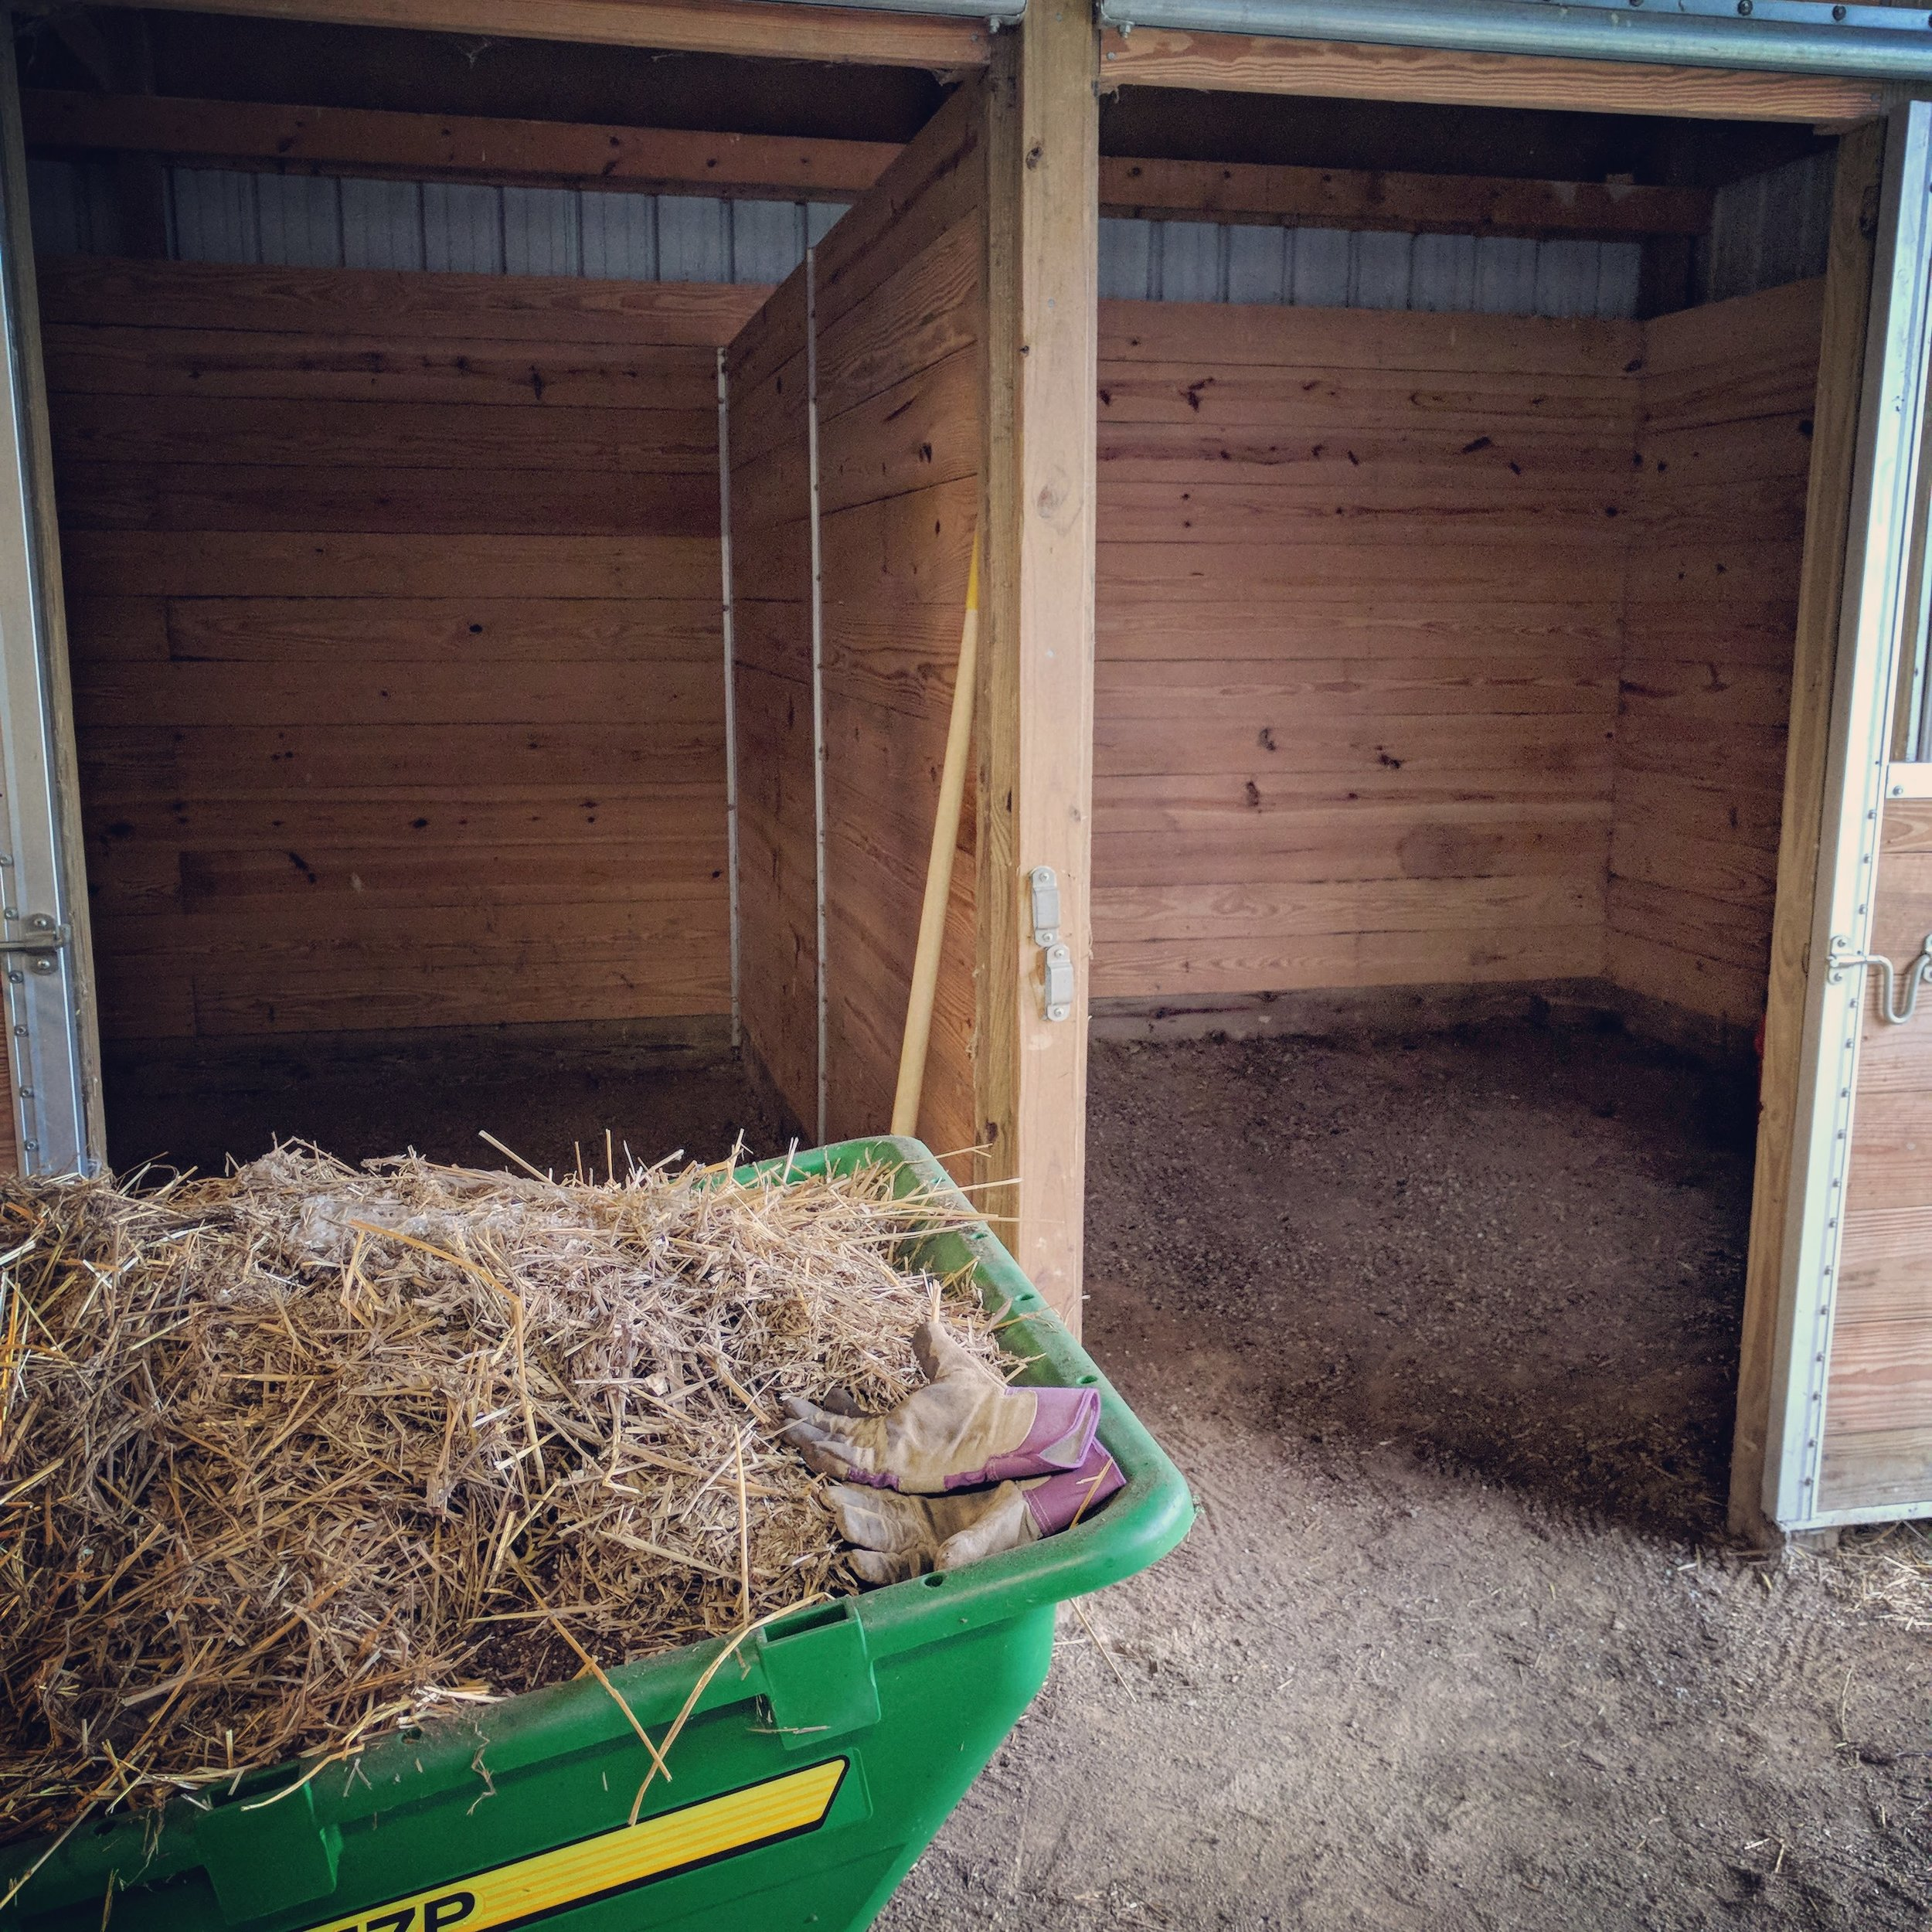 My Mother in Law and I made quick of work of cleaning these stalls last weekend. I credit my stronger arms for that!